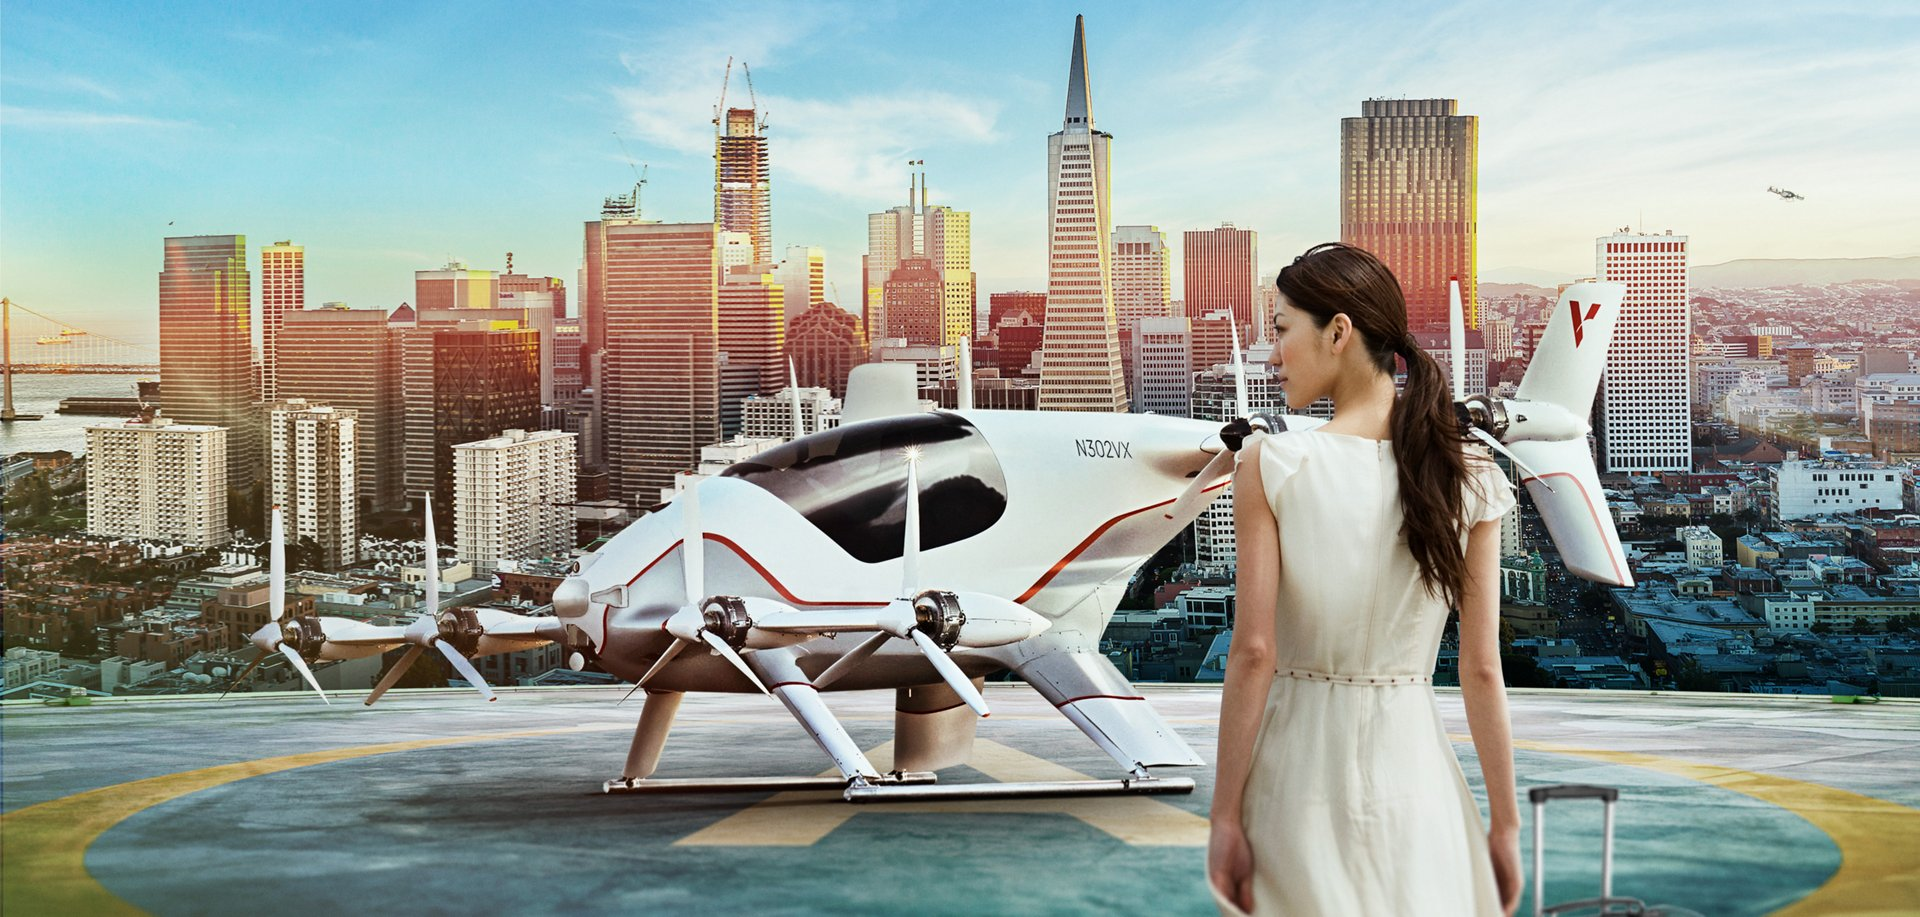 Vahana: our single-seat eVTOL demonstrator